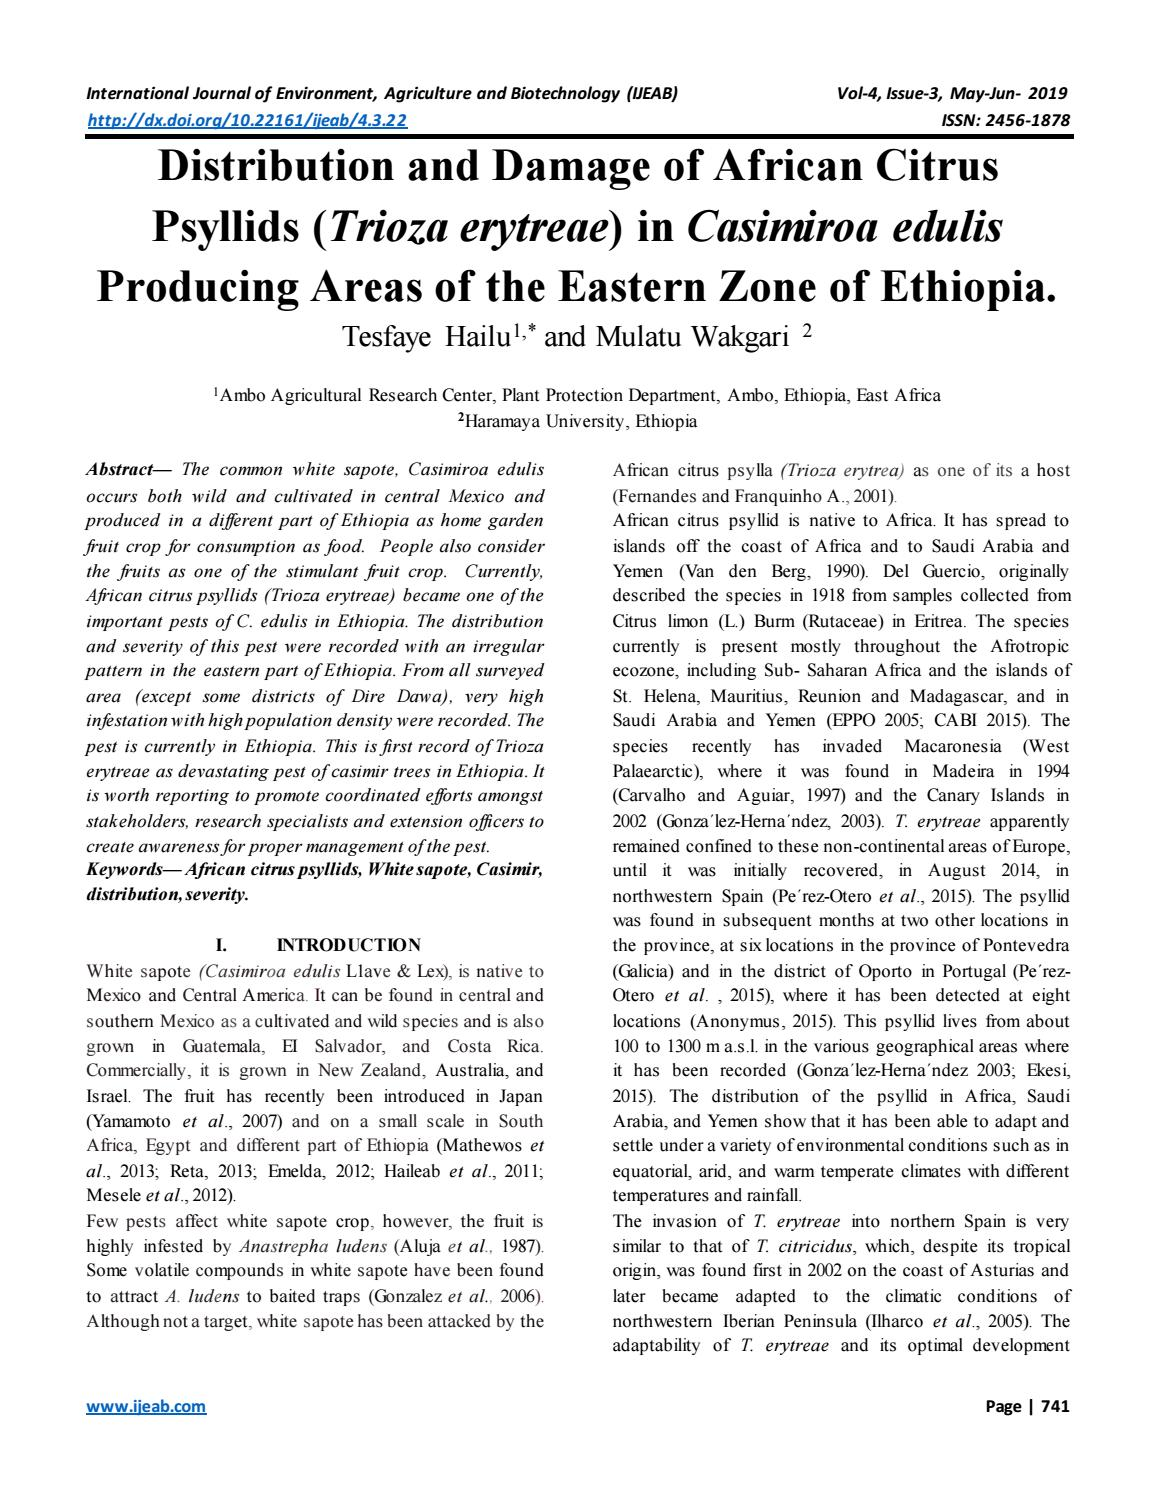 Distribution and Damage of African Citrus Psyllids (Trioza